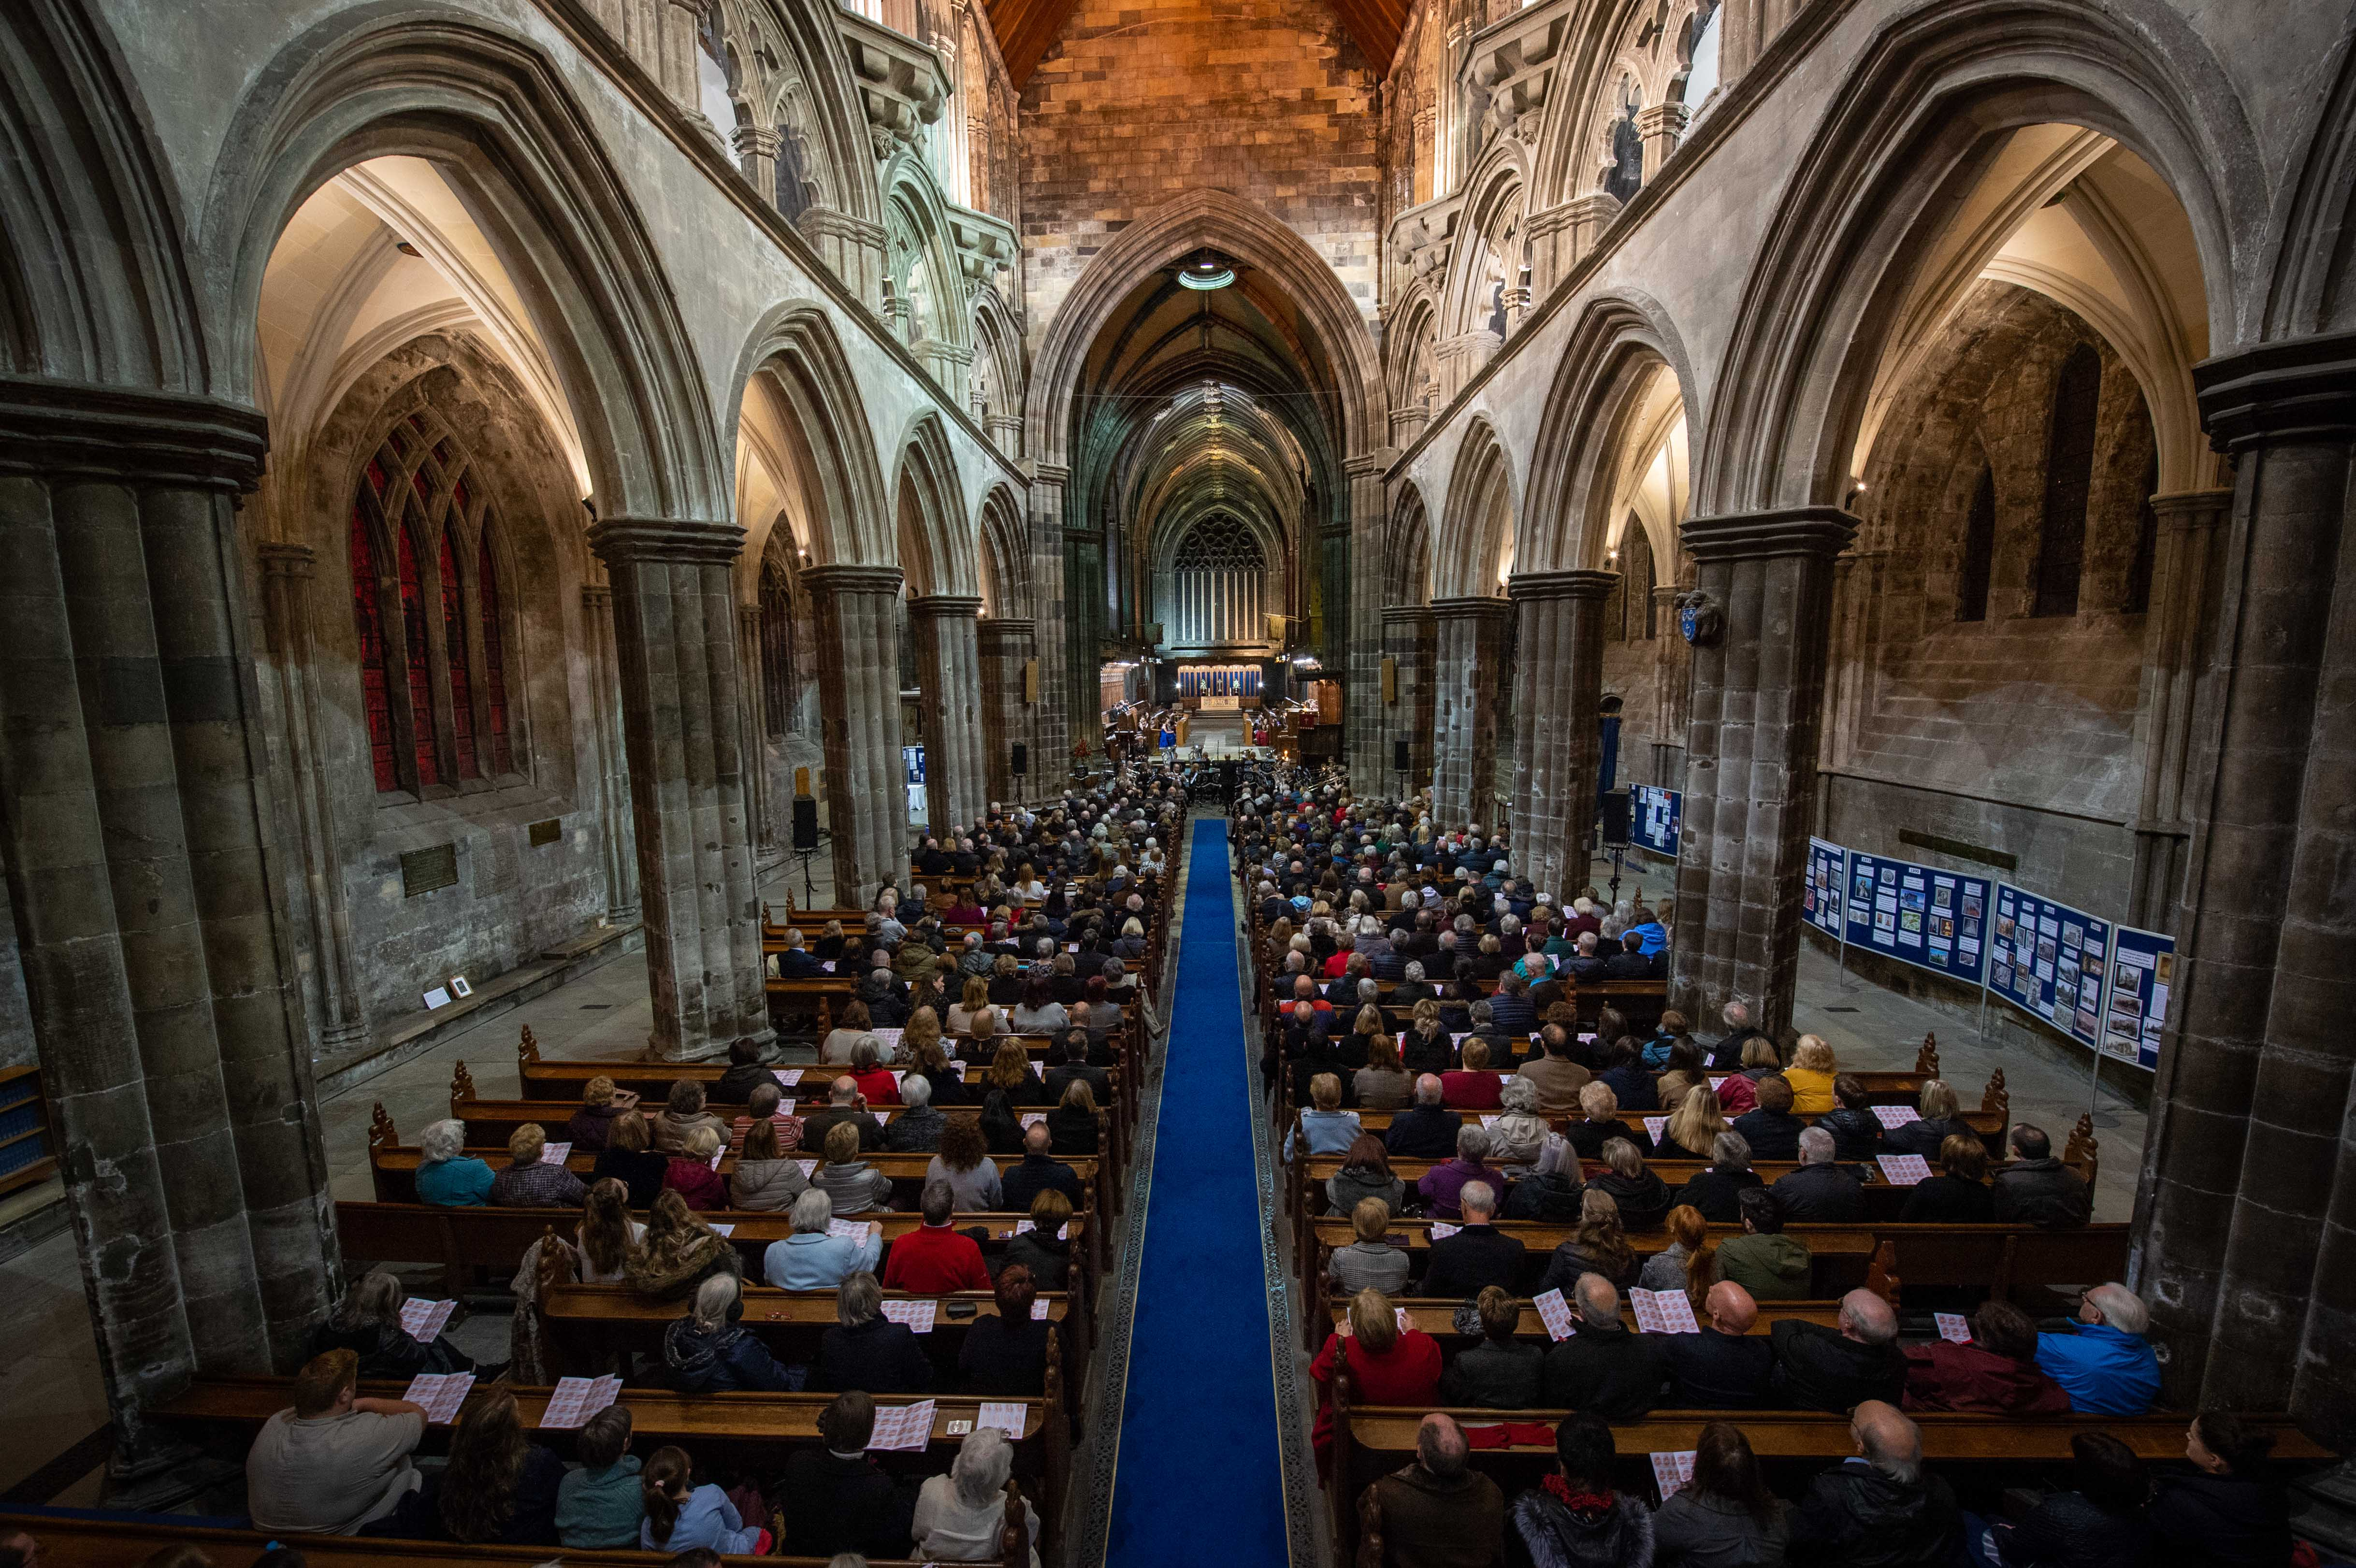 Hundreds attended the special service to commemortate 100 years since the end of the First World War